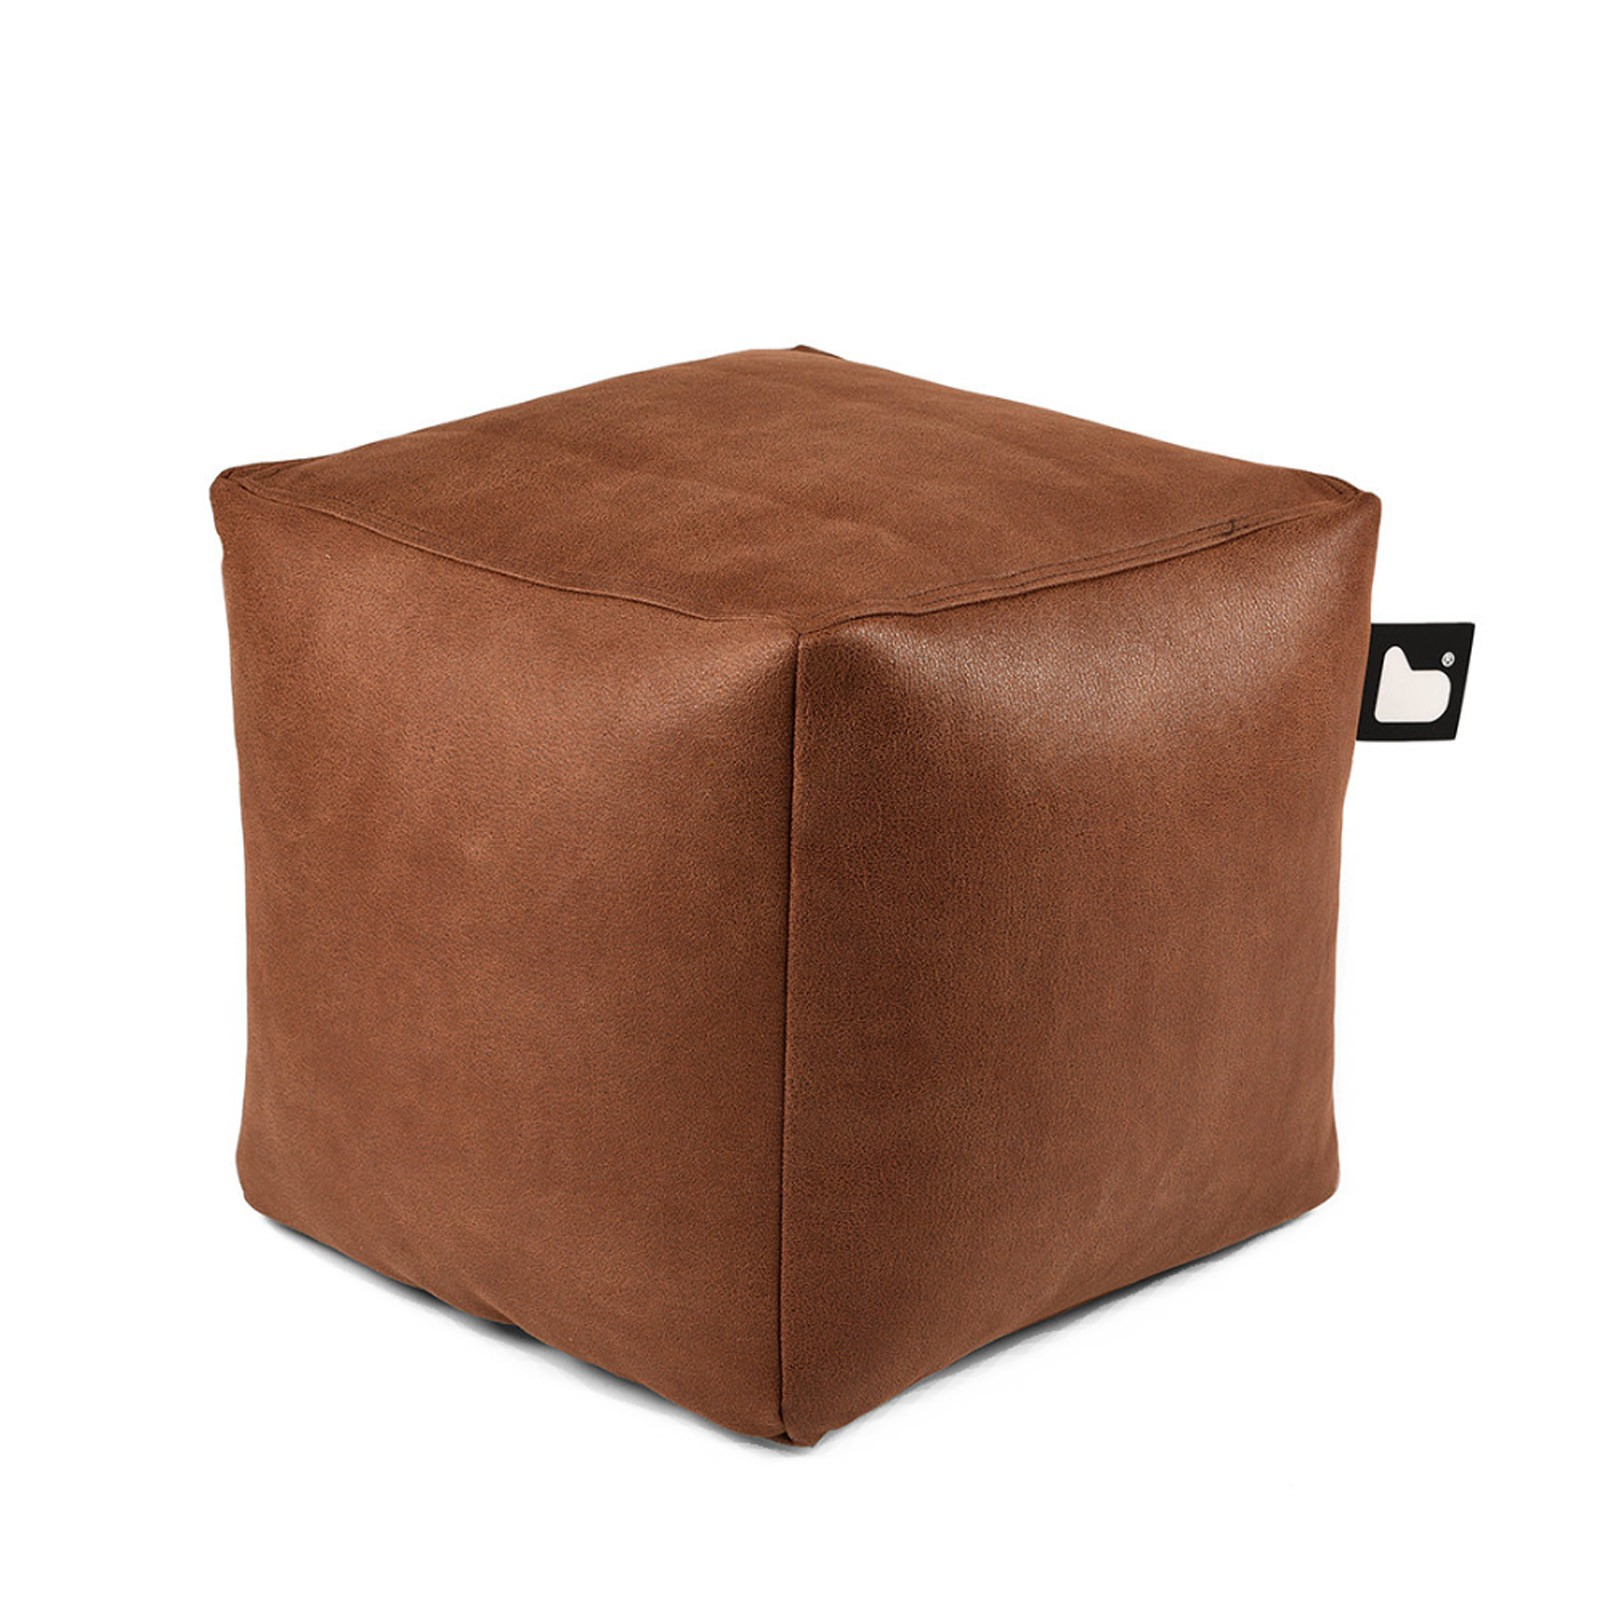 b-bag Extreme Lounging Sitzwürfel Box Lederoptik mighty-b, Farbe Chestnut